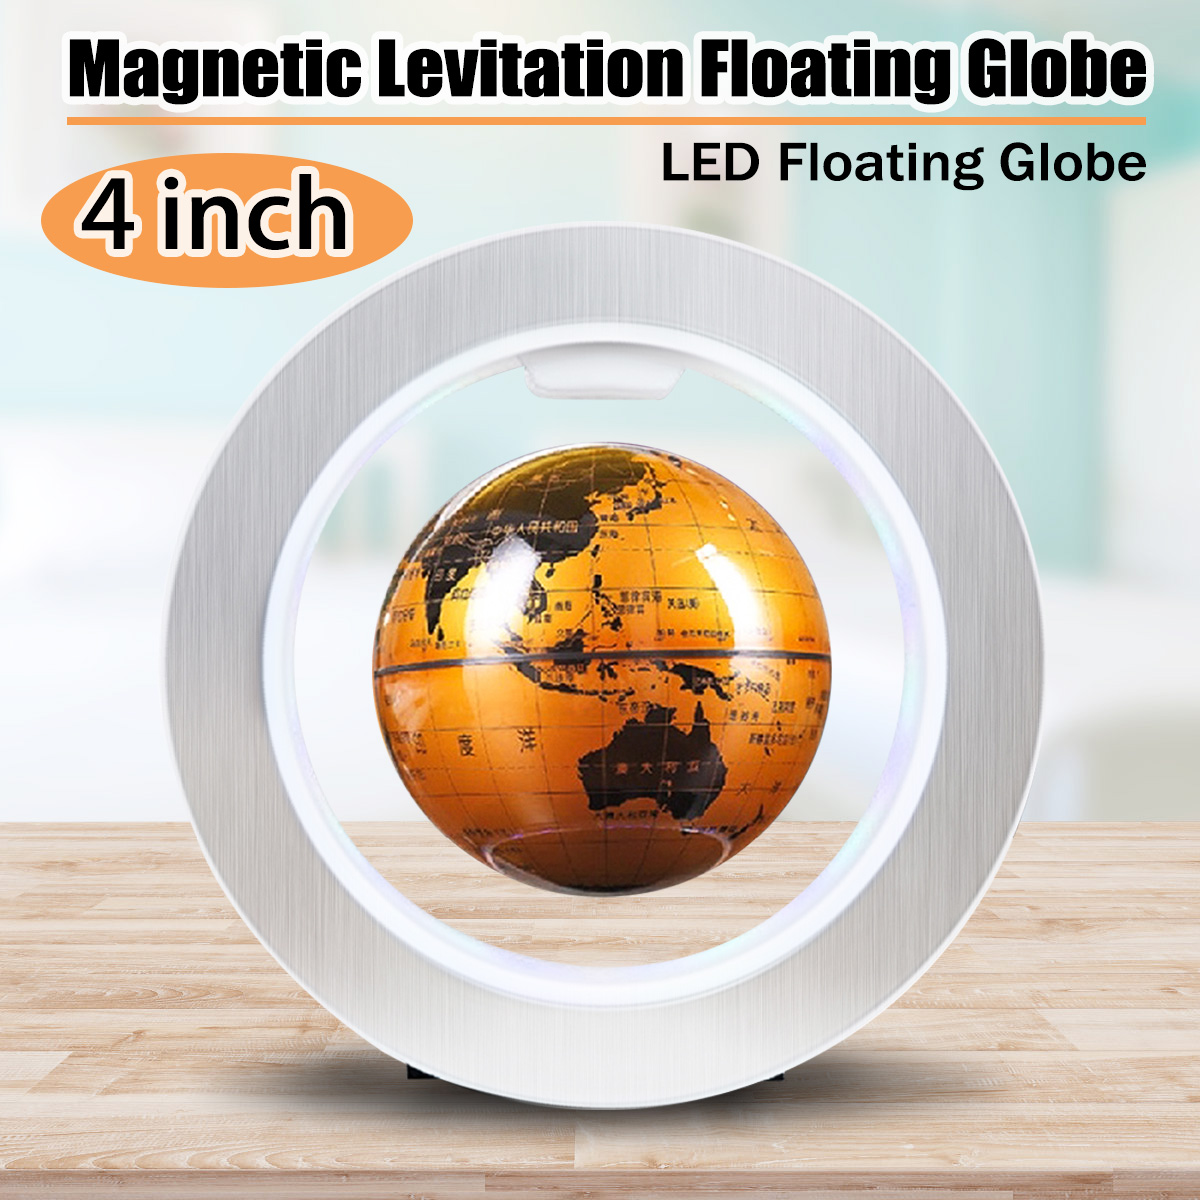 4 Inch Electronic Magnetic Levitation Floating Globe Map LED Light Self-Rotating Home Office Desk Decor Christmas Birthday Gift